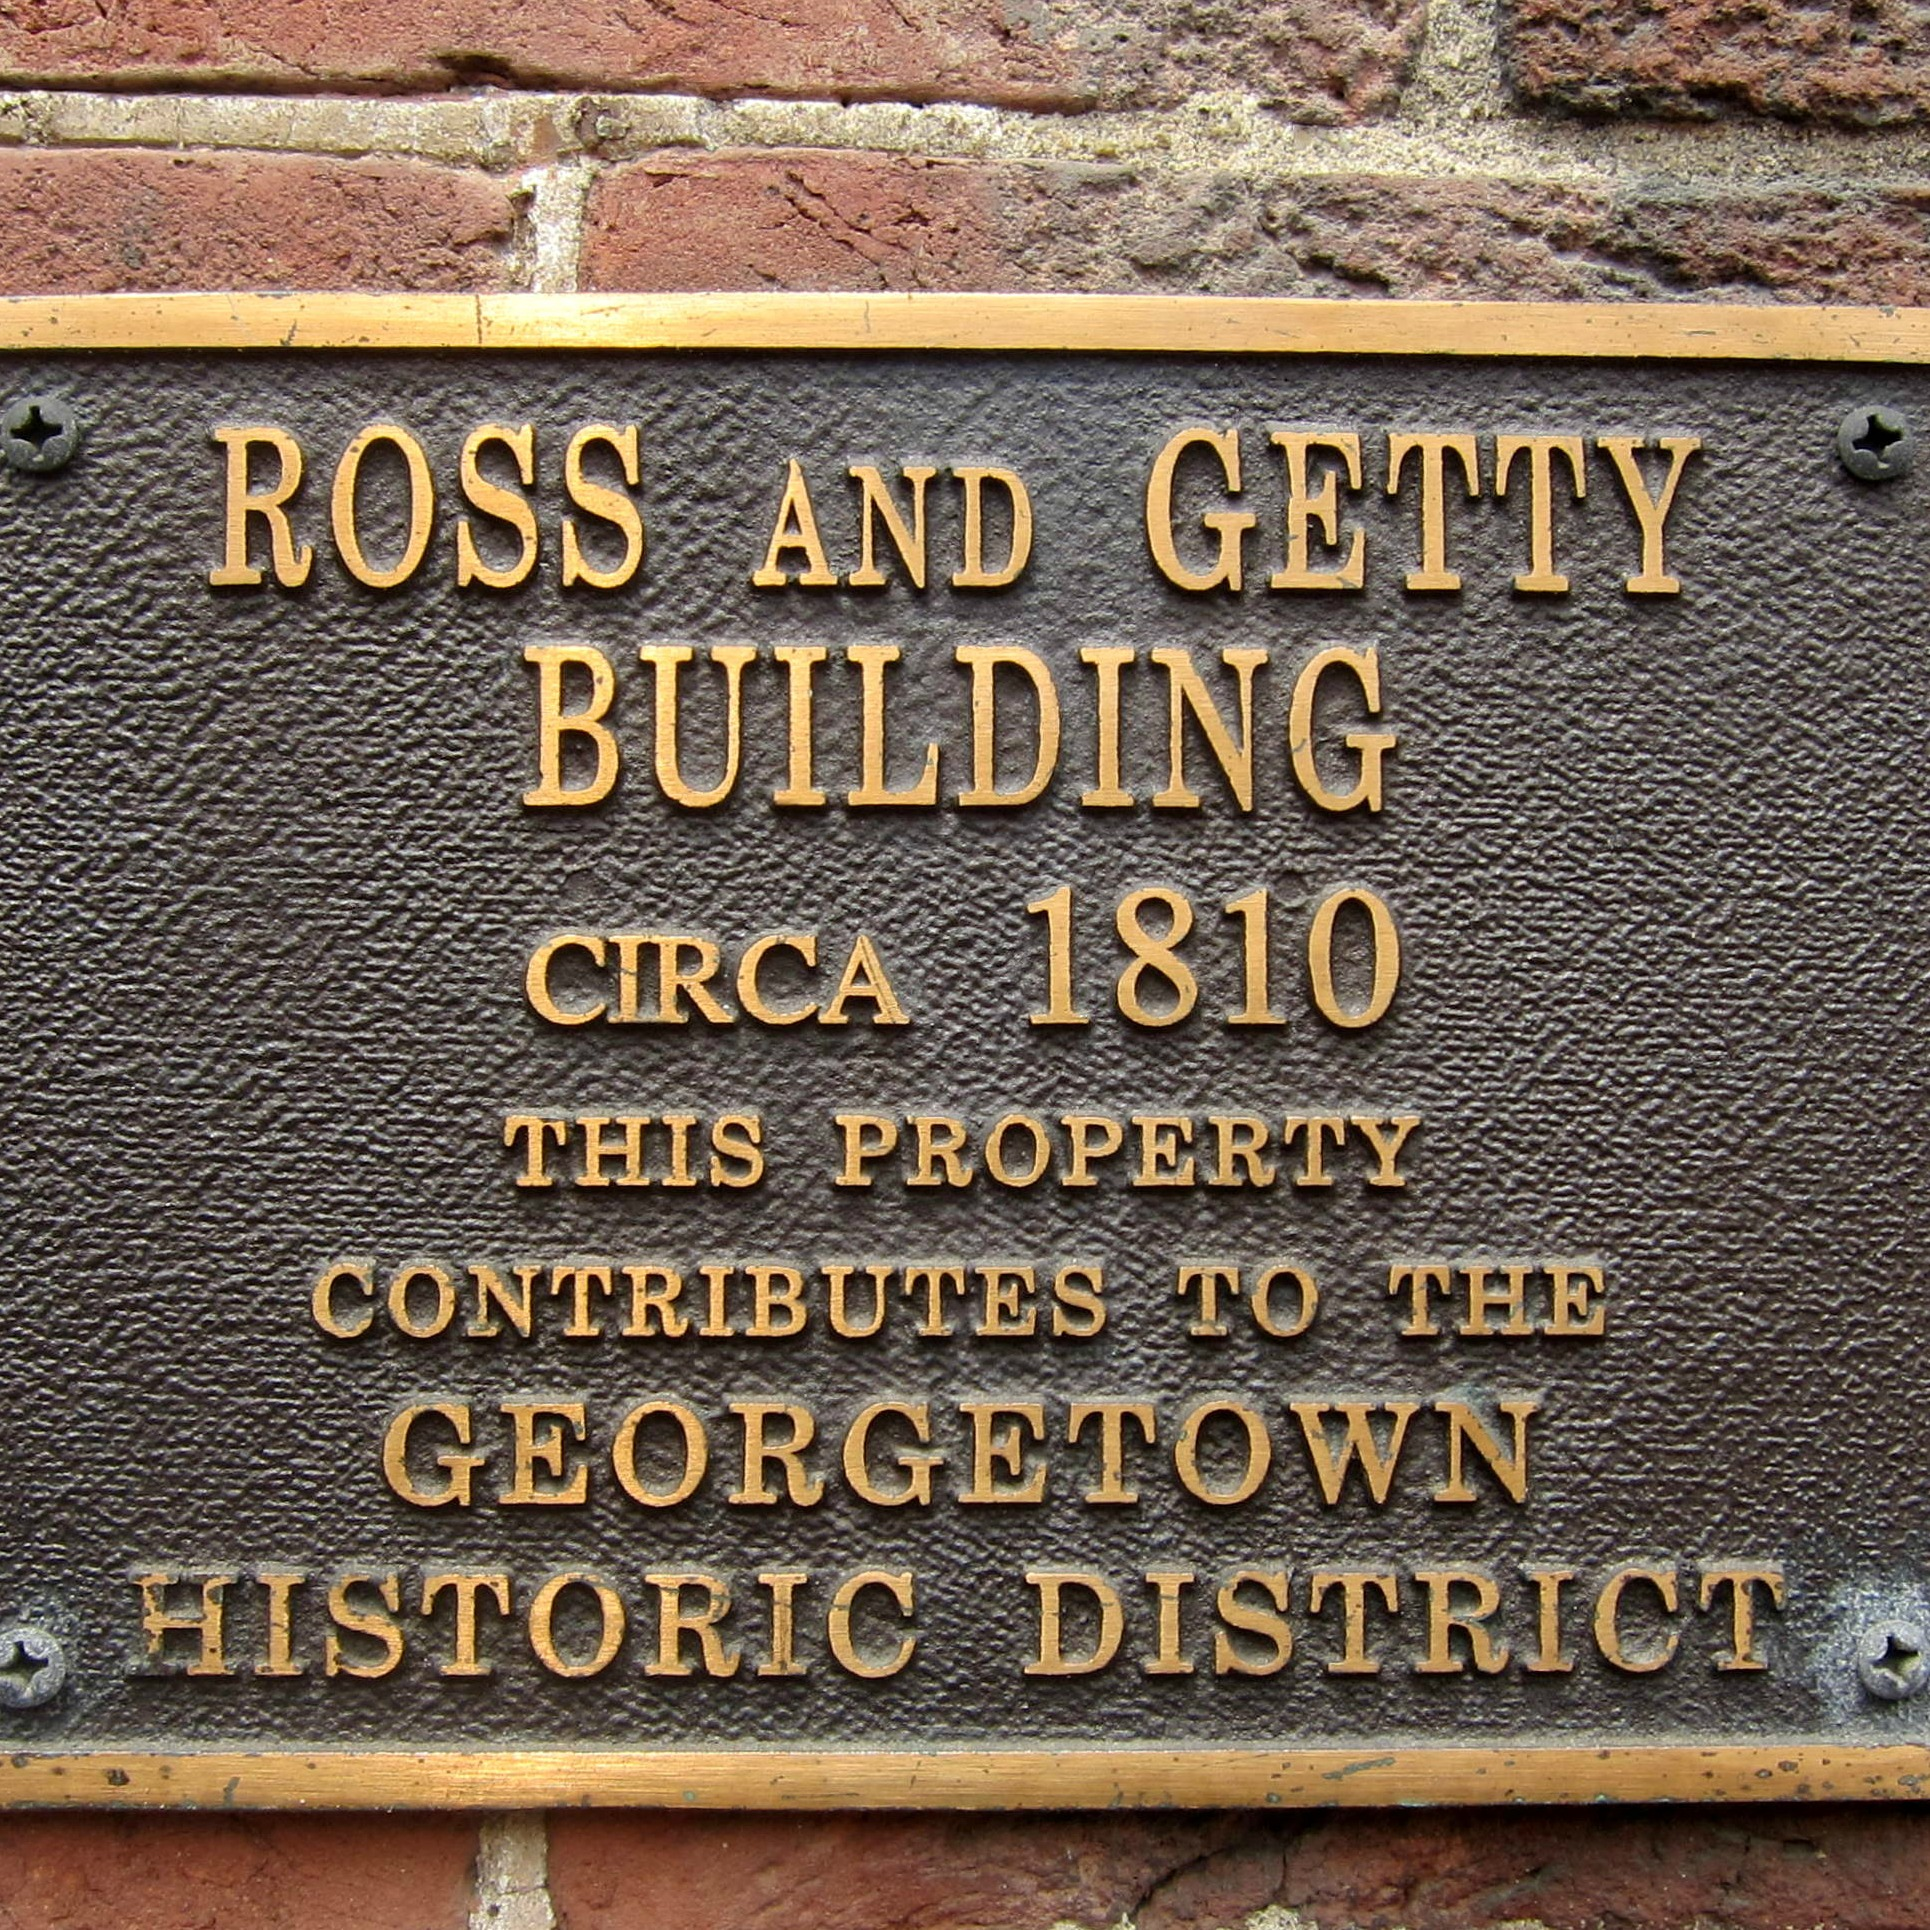 Ross_and_Getty_Building_-_plaque